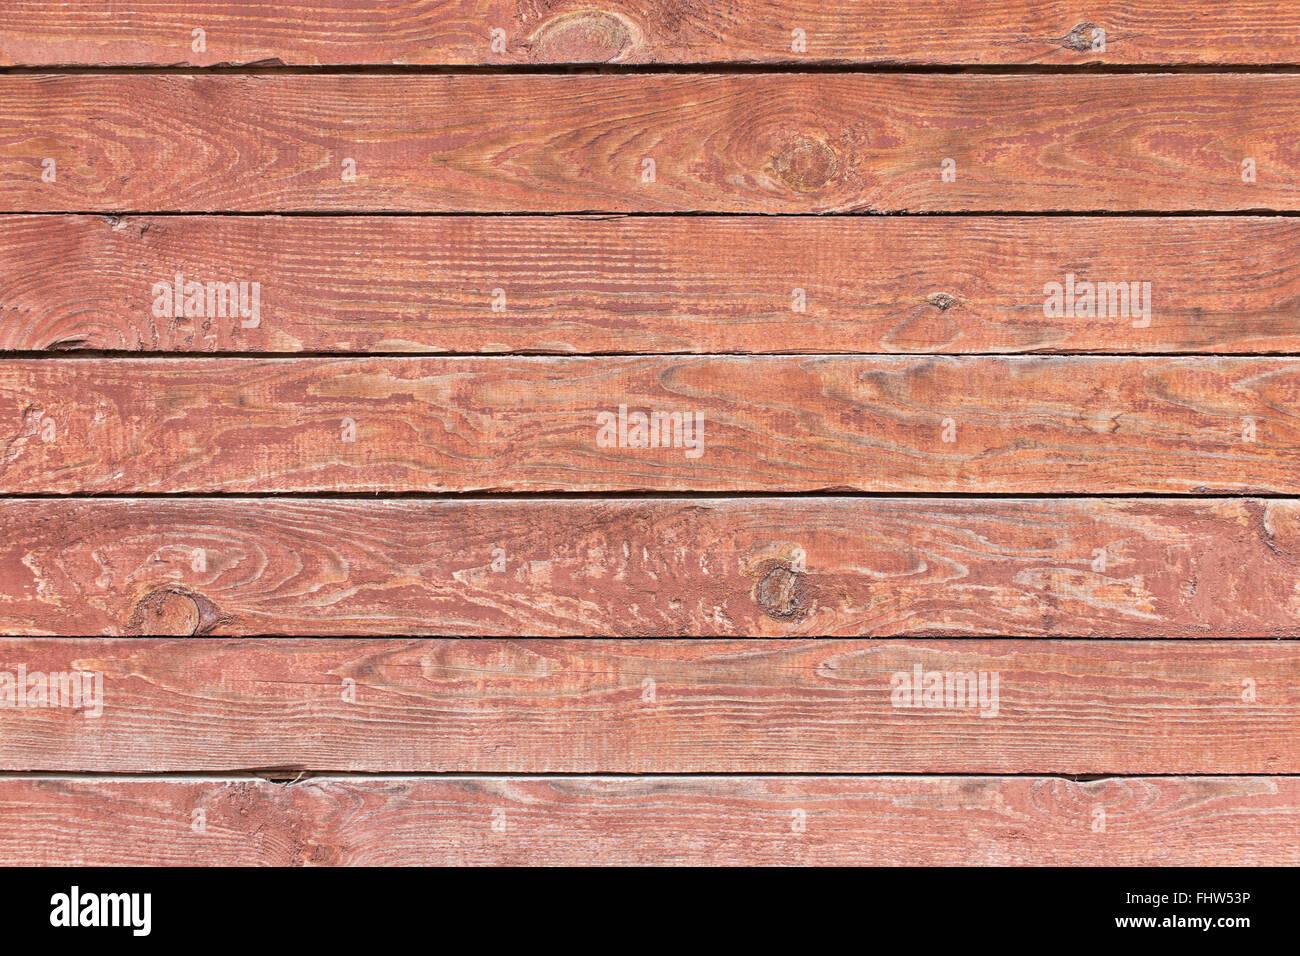 Old wooden painted planks board background - Stock Image